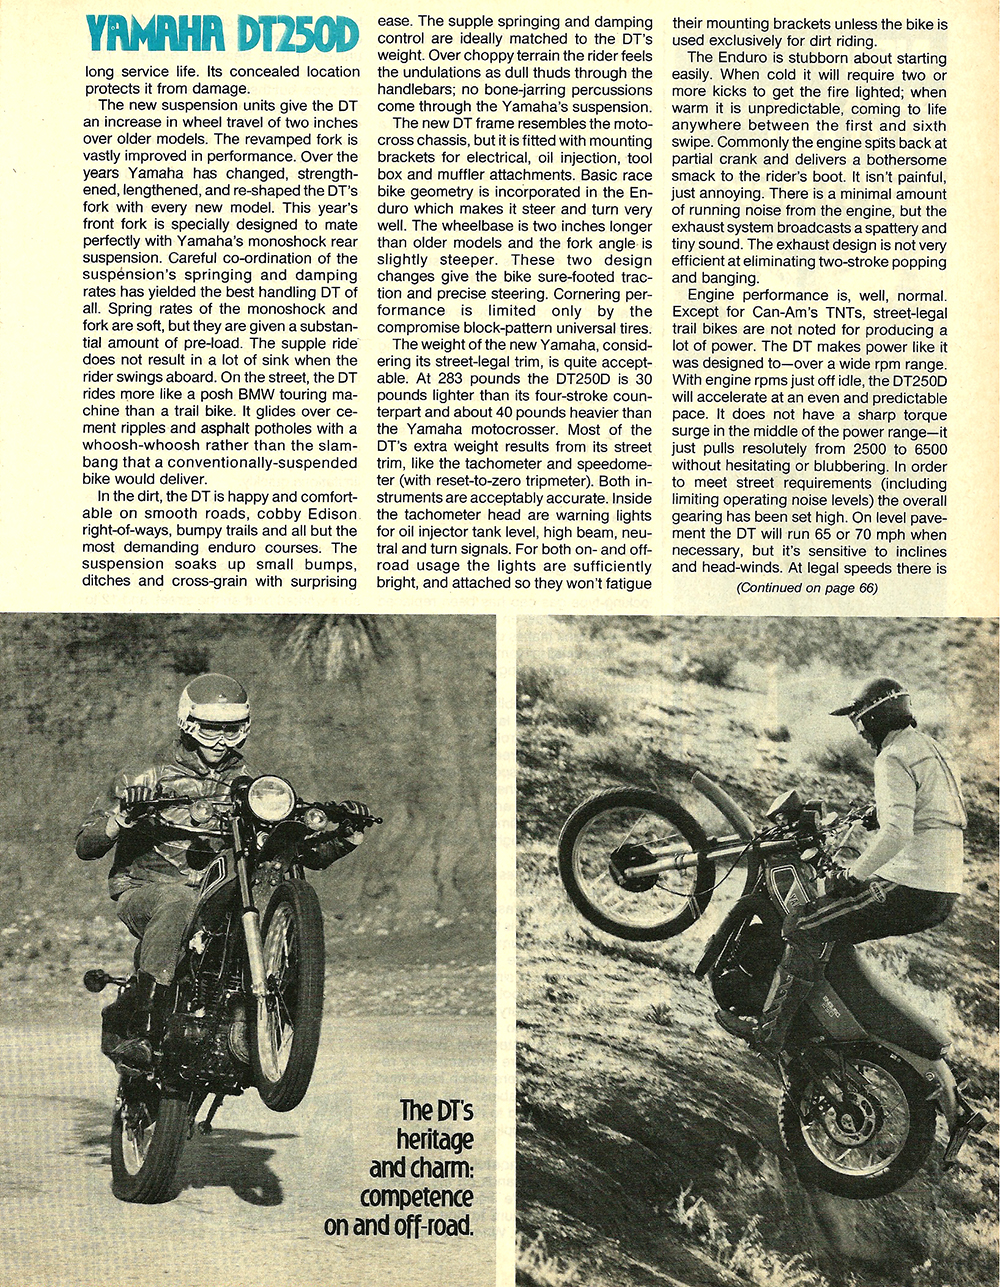 1977 Yamaha DT250D road test 5.jpg